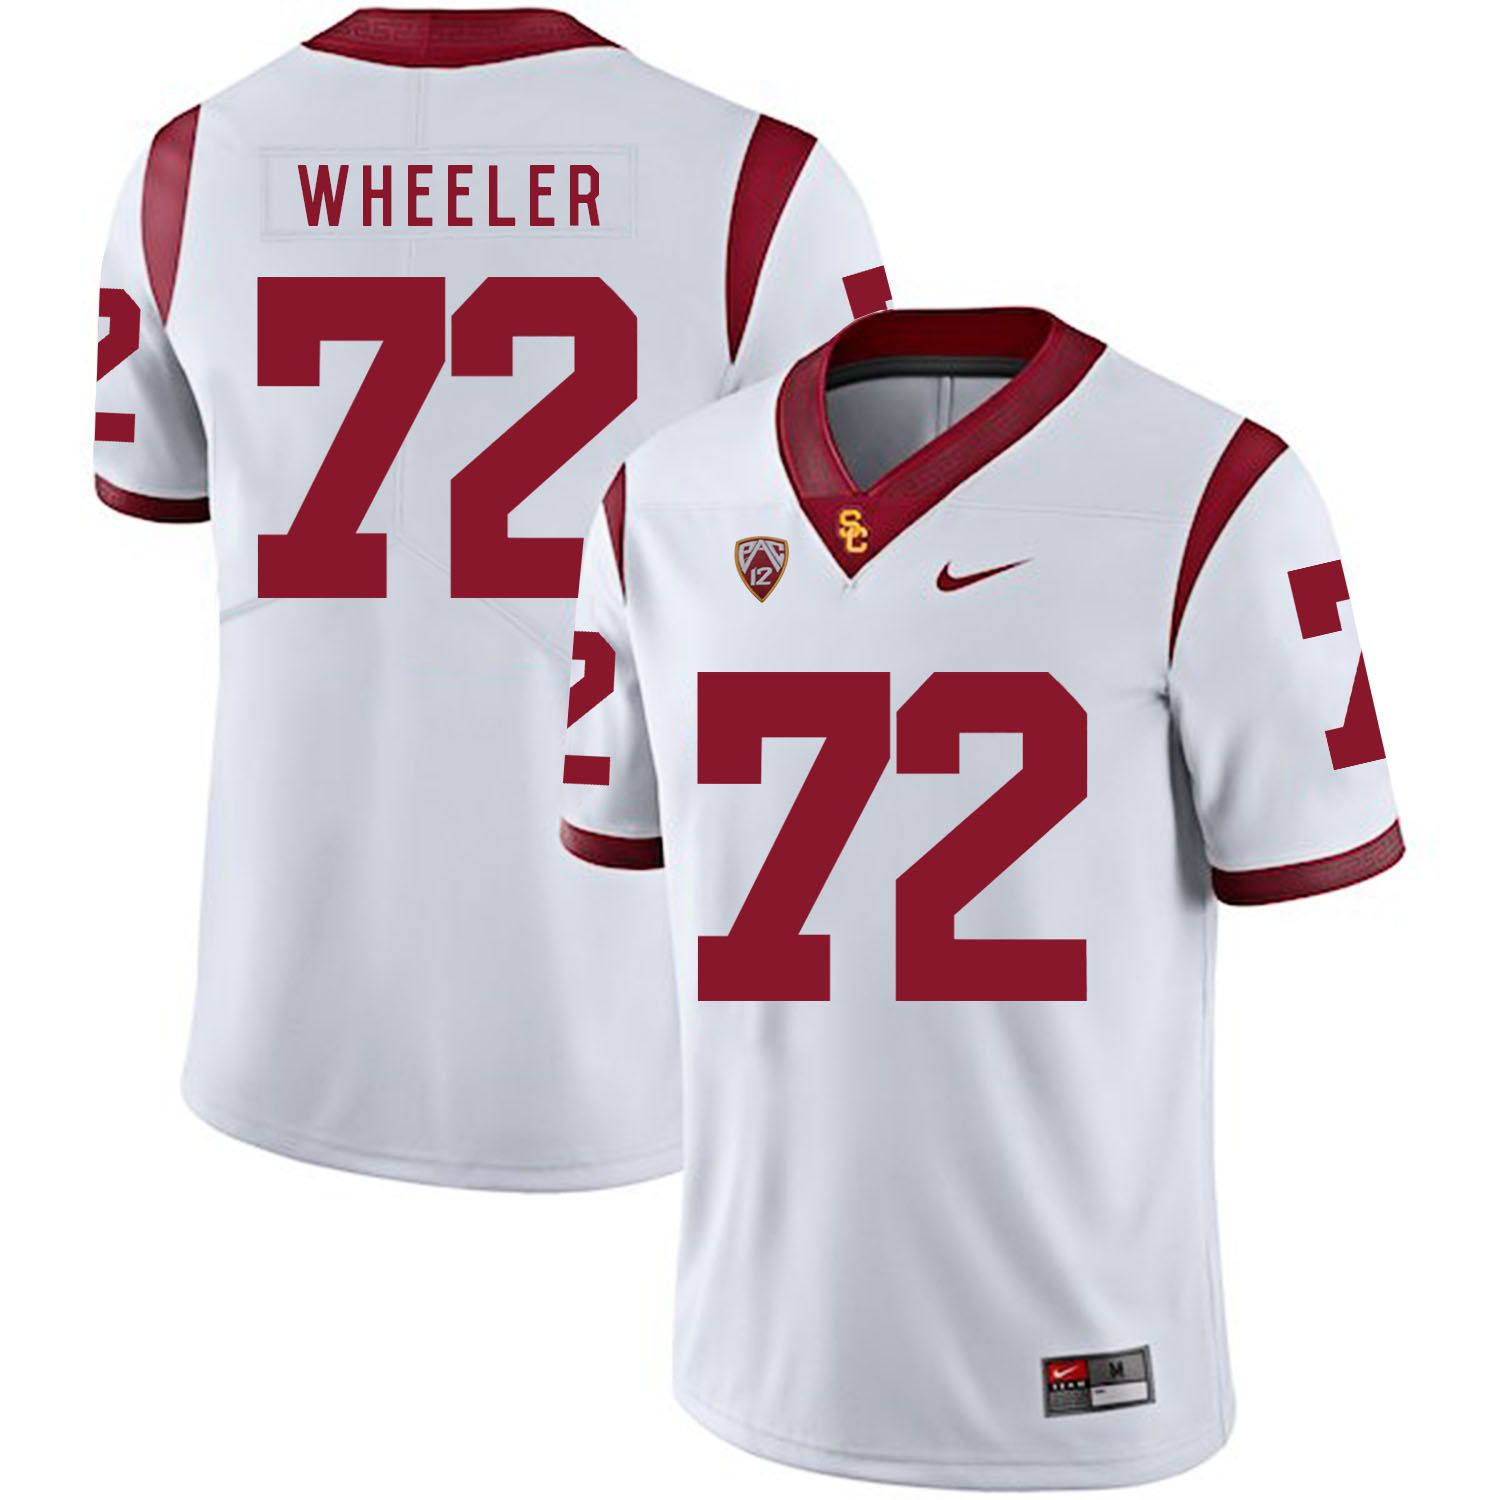 Men USC Trojans 72 Wheeler White Customized NCAA Jerseys